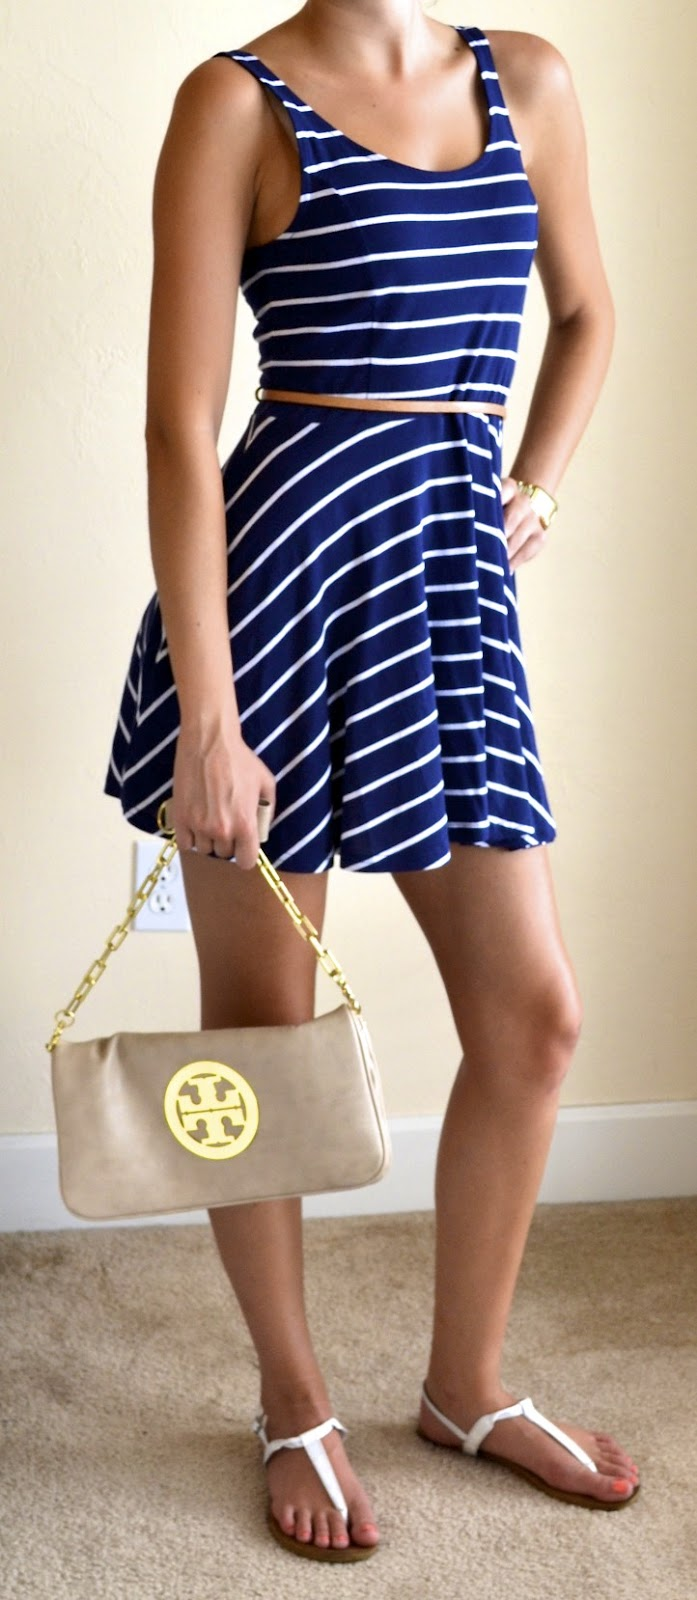 bdeeb1d0b4e2 Navy and white striped dress – H M Shoes  White sandals – Pac Sun  Accessories  Tan gold chain cross-body – Tory Burch Tan belt – JCrew